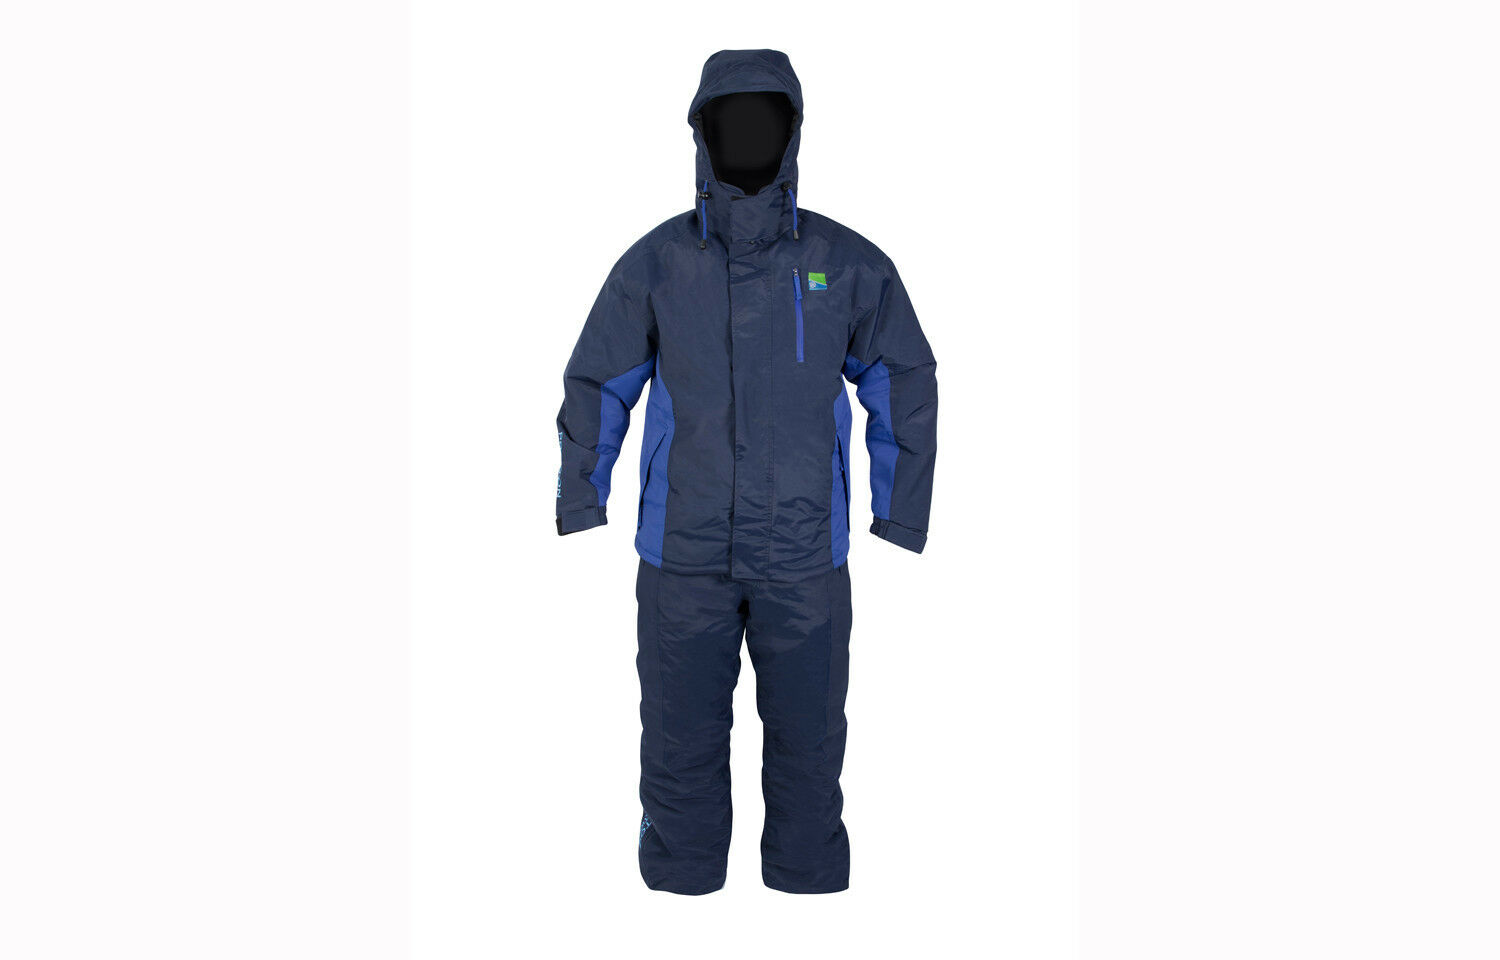 Preston Innovations Celcius Thermal Suit